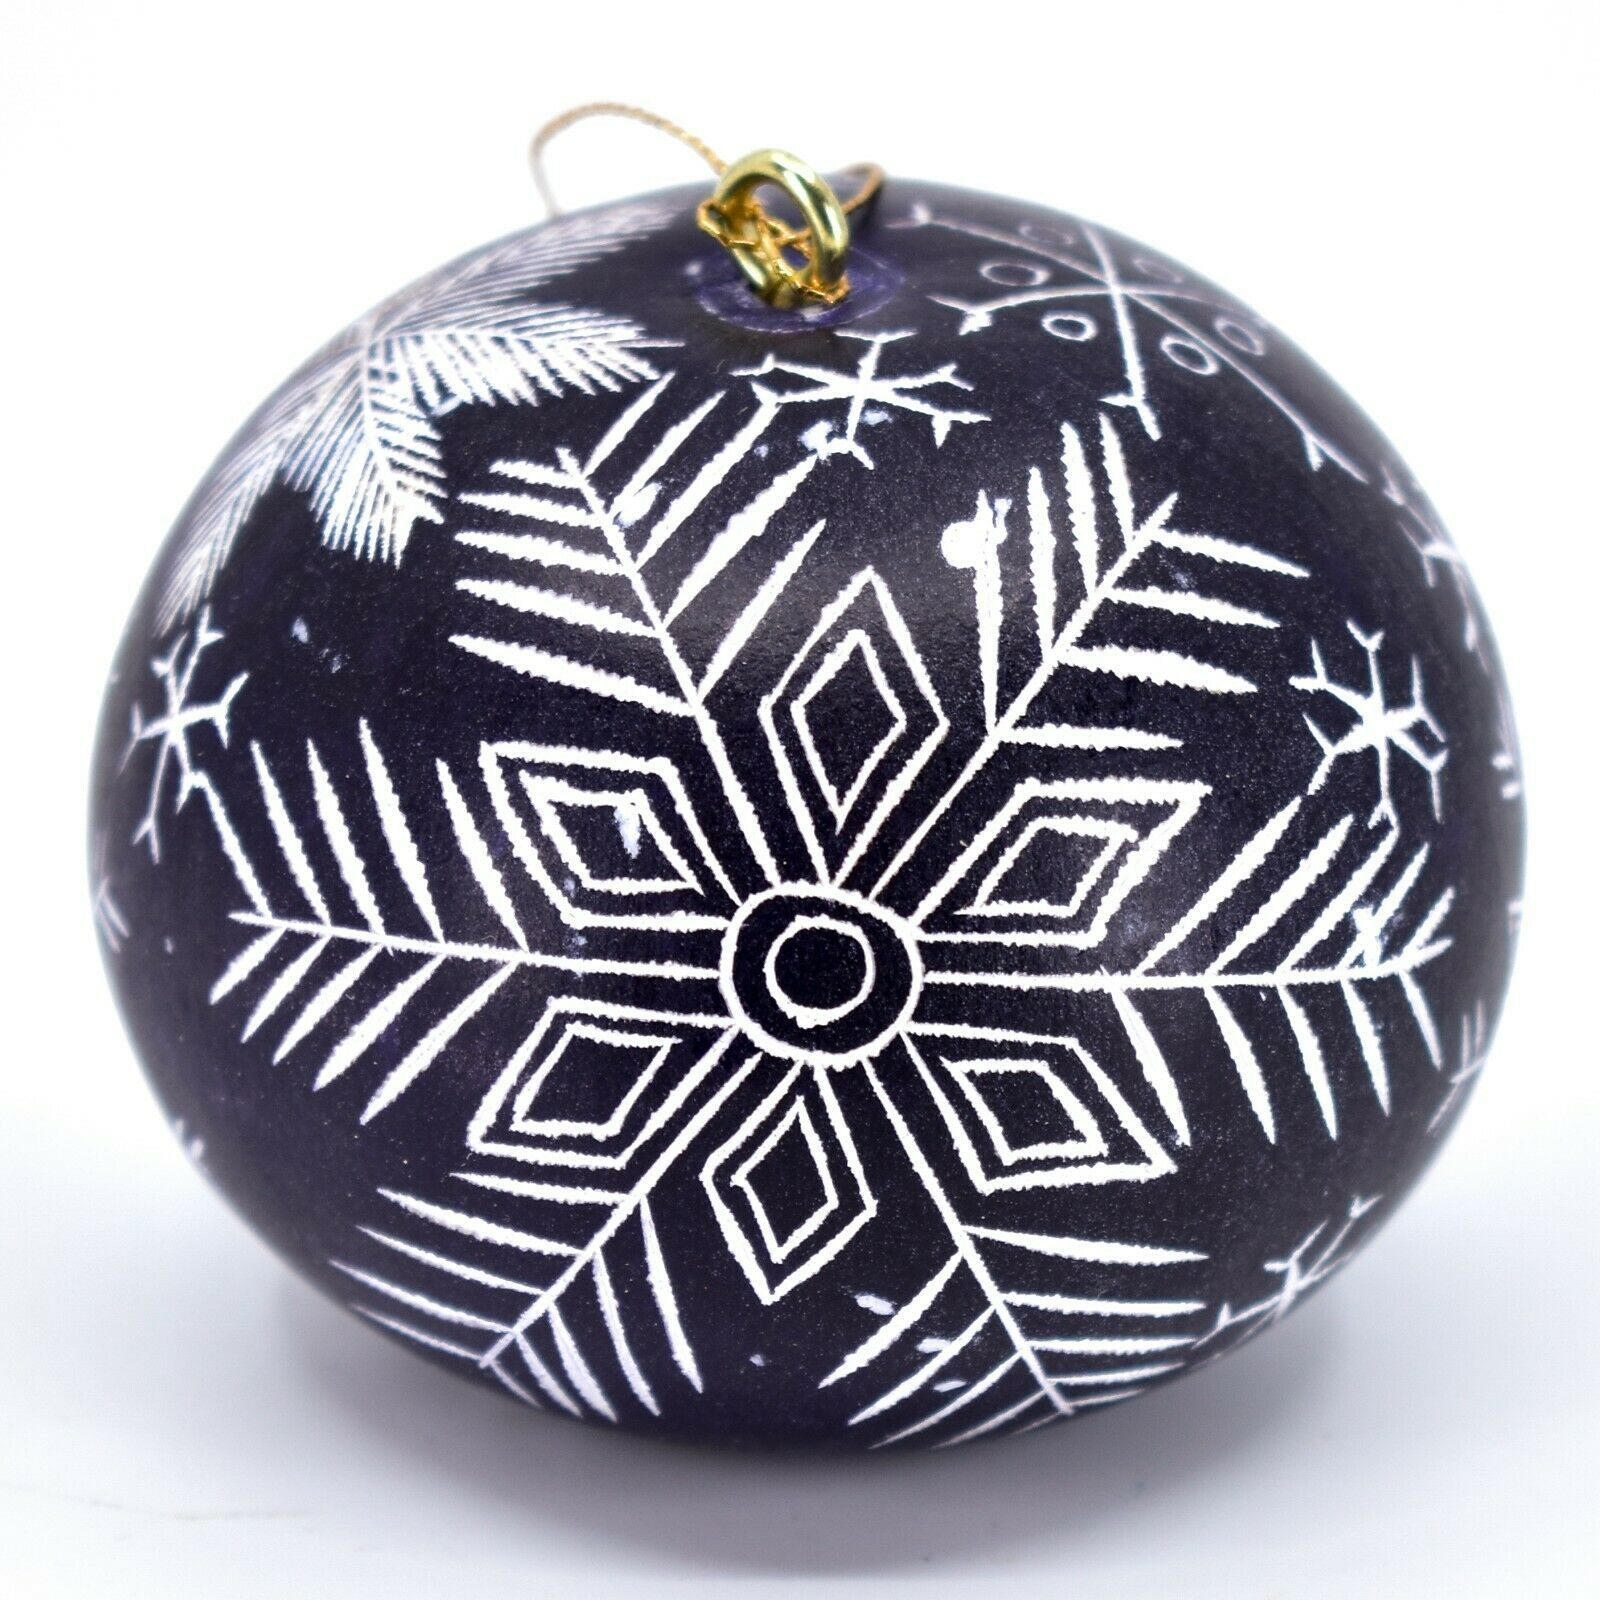 Handcrafted Carved Gourd Art Winter Snowflake Ornament Made in Peru